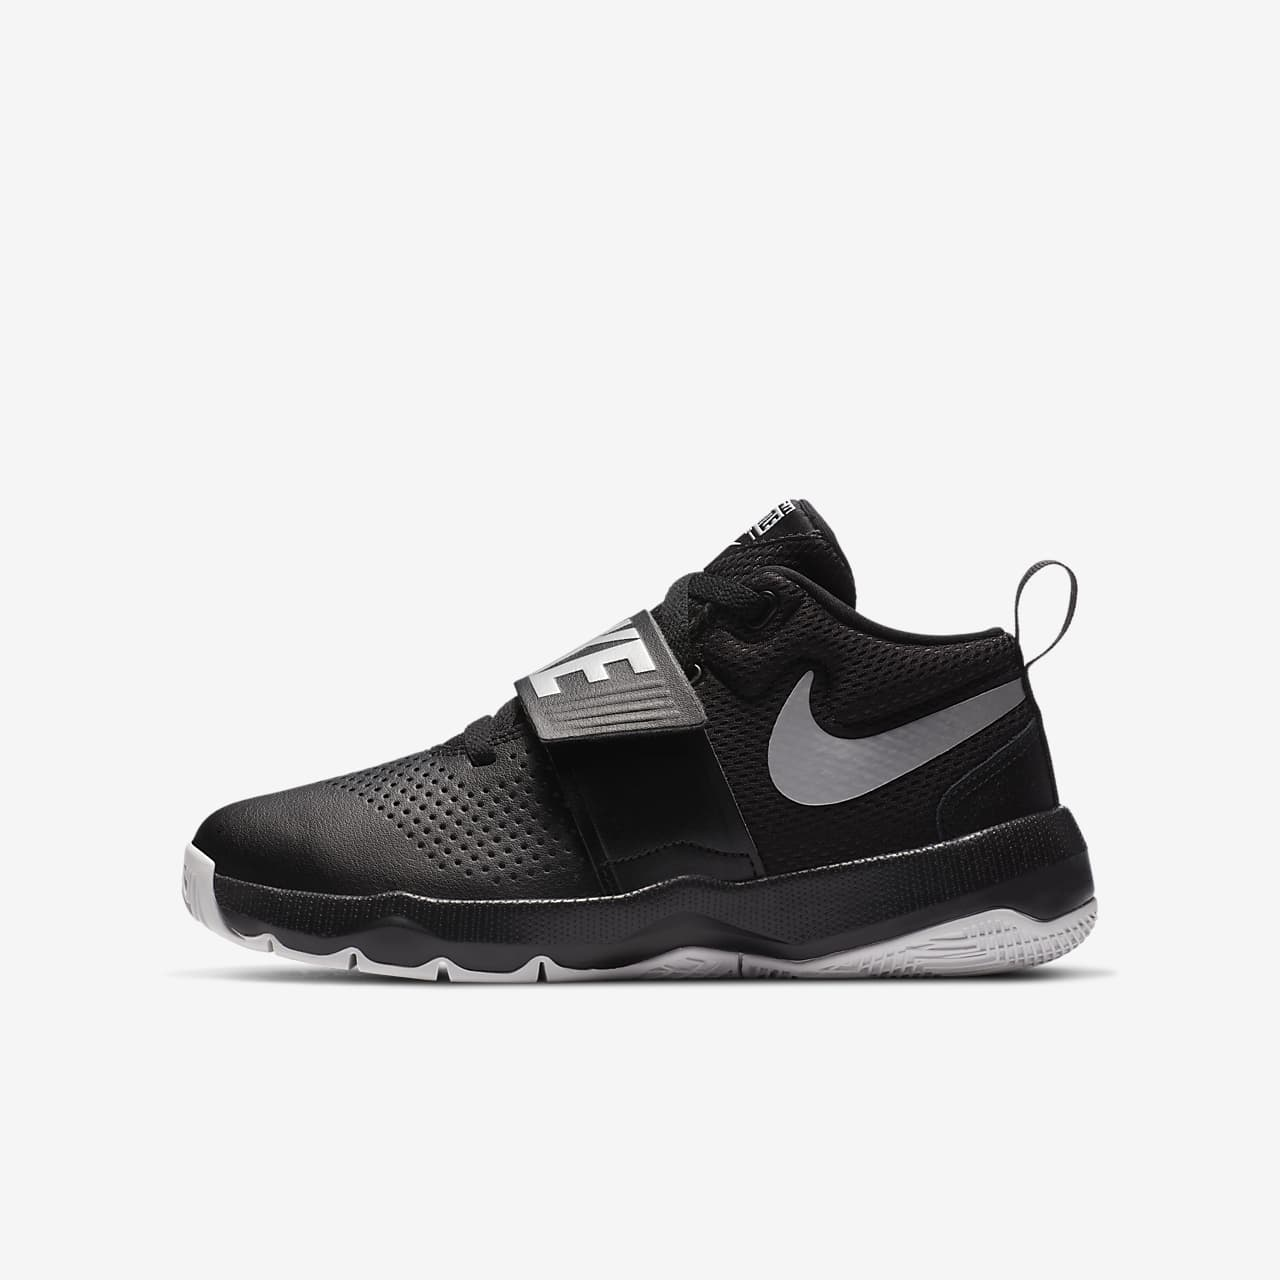 fcc7dee625a Nike Team Hustle D 8 Big Kids  Basketball Shoe. Nike.com